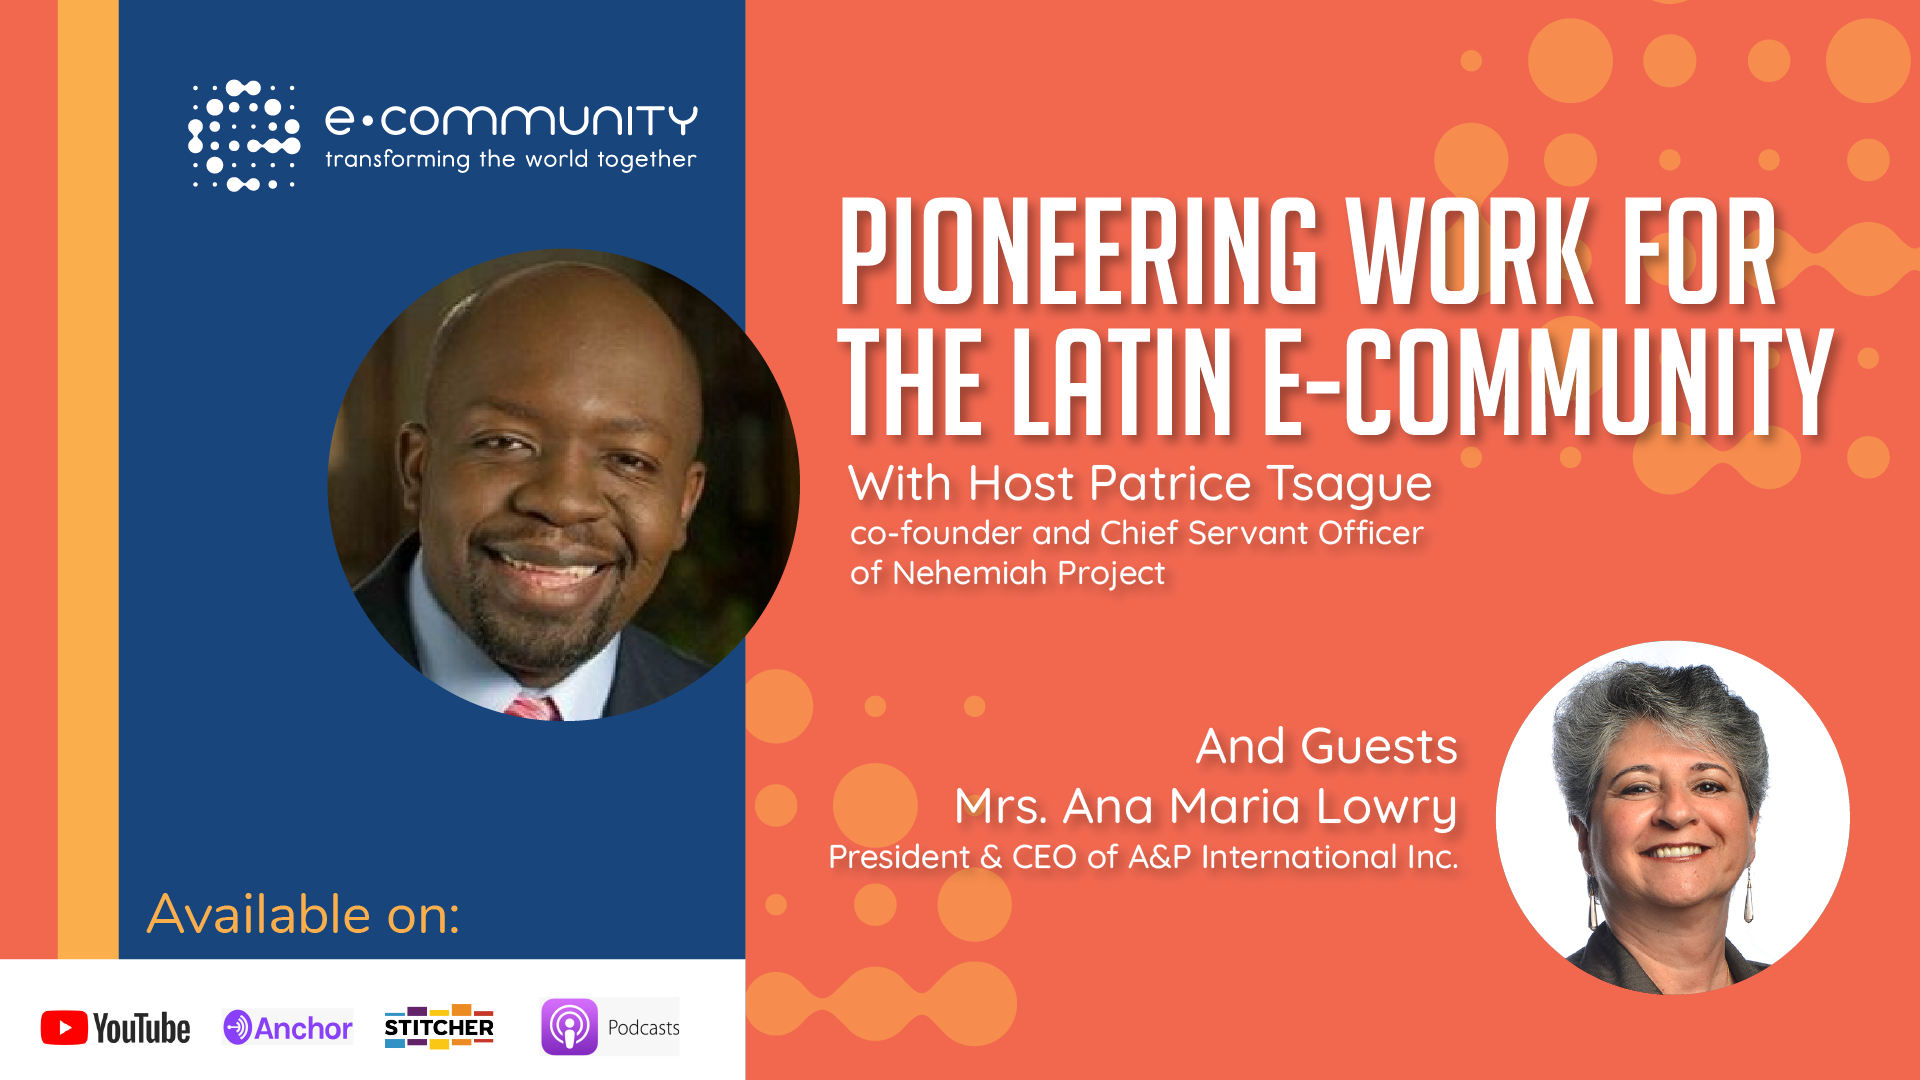 Pioneering work for the Latin E-Community